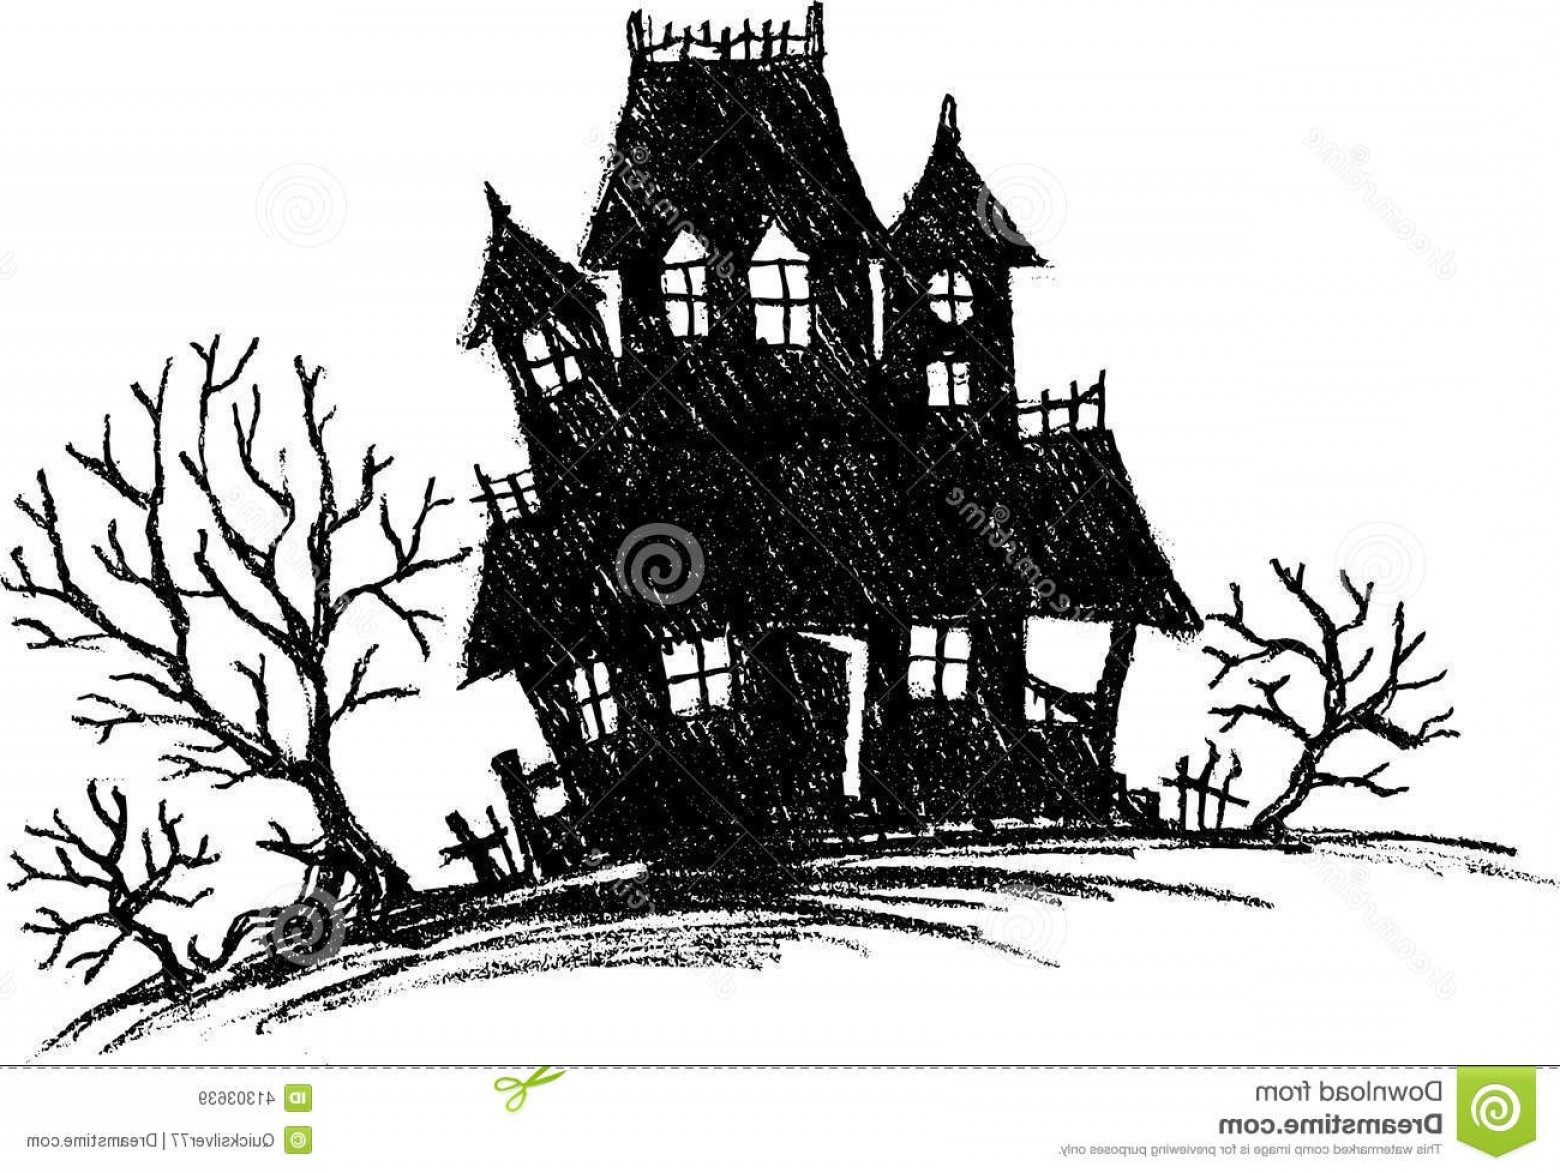 Halloween Haunted House Silhouette Vector: Stock Illustration Haunted House Sketch Hand Drawn Spooky Silhouette Isolated Illustration Image